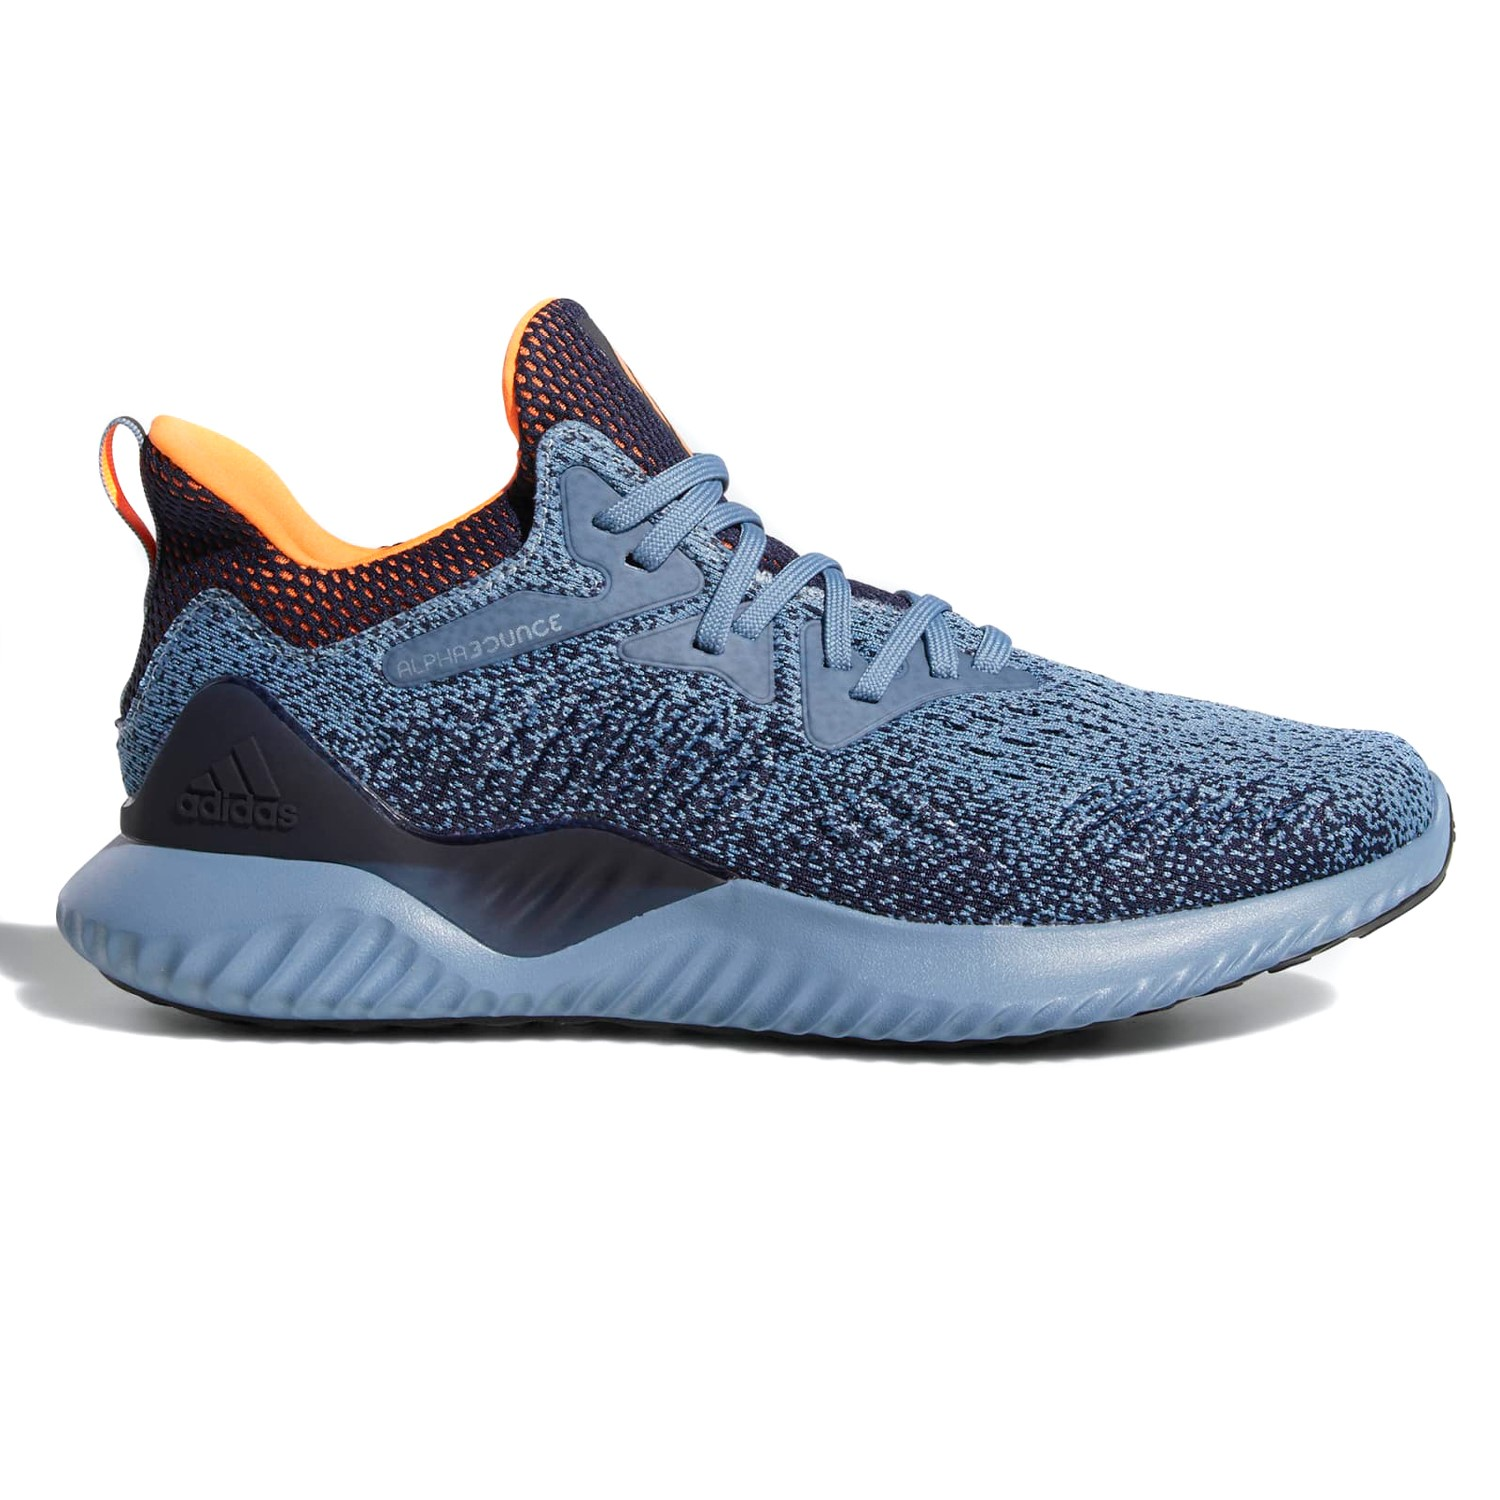 4a2619e95 Adidas AlphaBounce Beyond - Mens Running Shoes - Grey Orange Ink ...